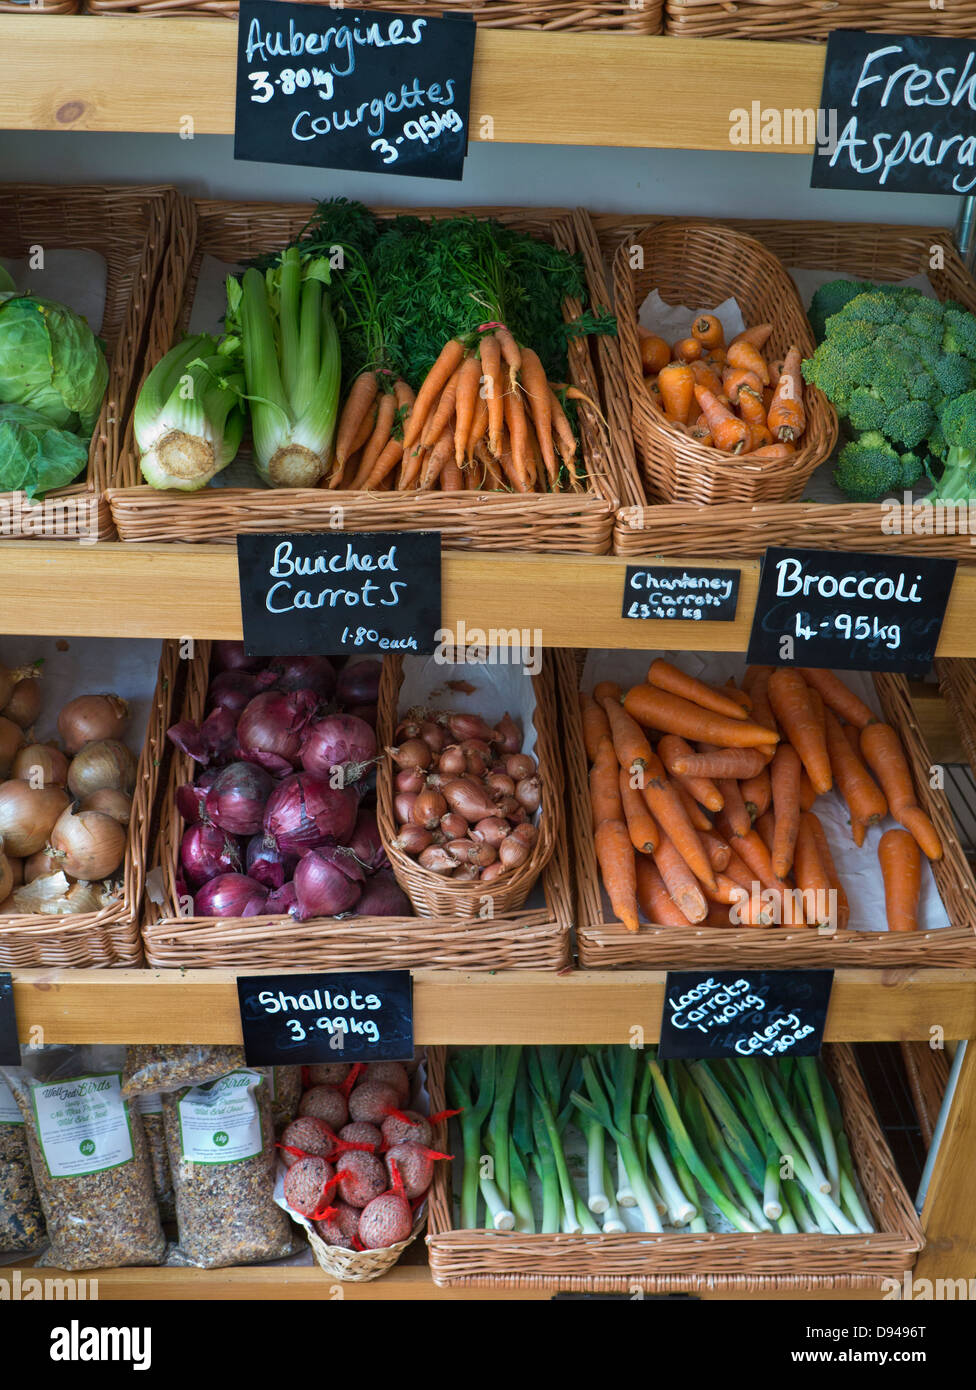 Traditional high street produce farm shop interior with fresh local fruit and vegetables on sale in Kilos blackboards - Stock Image